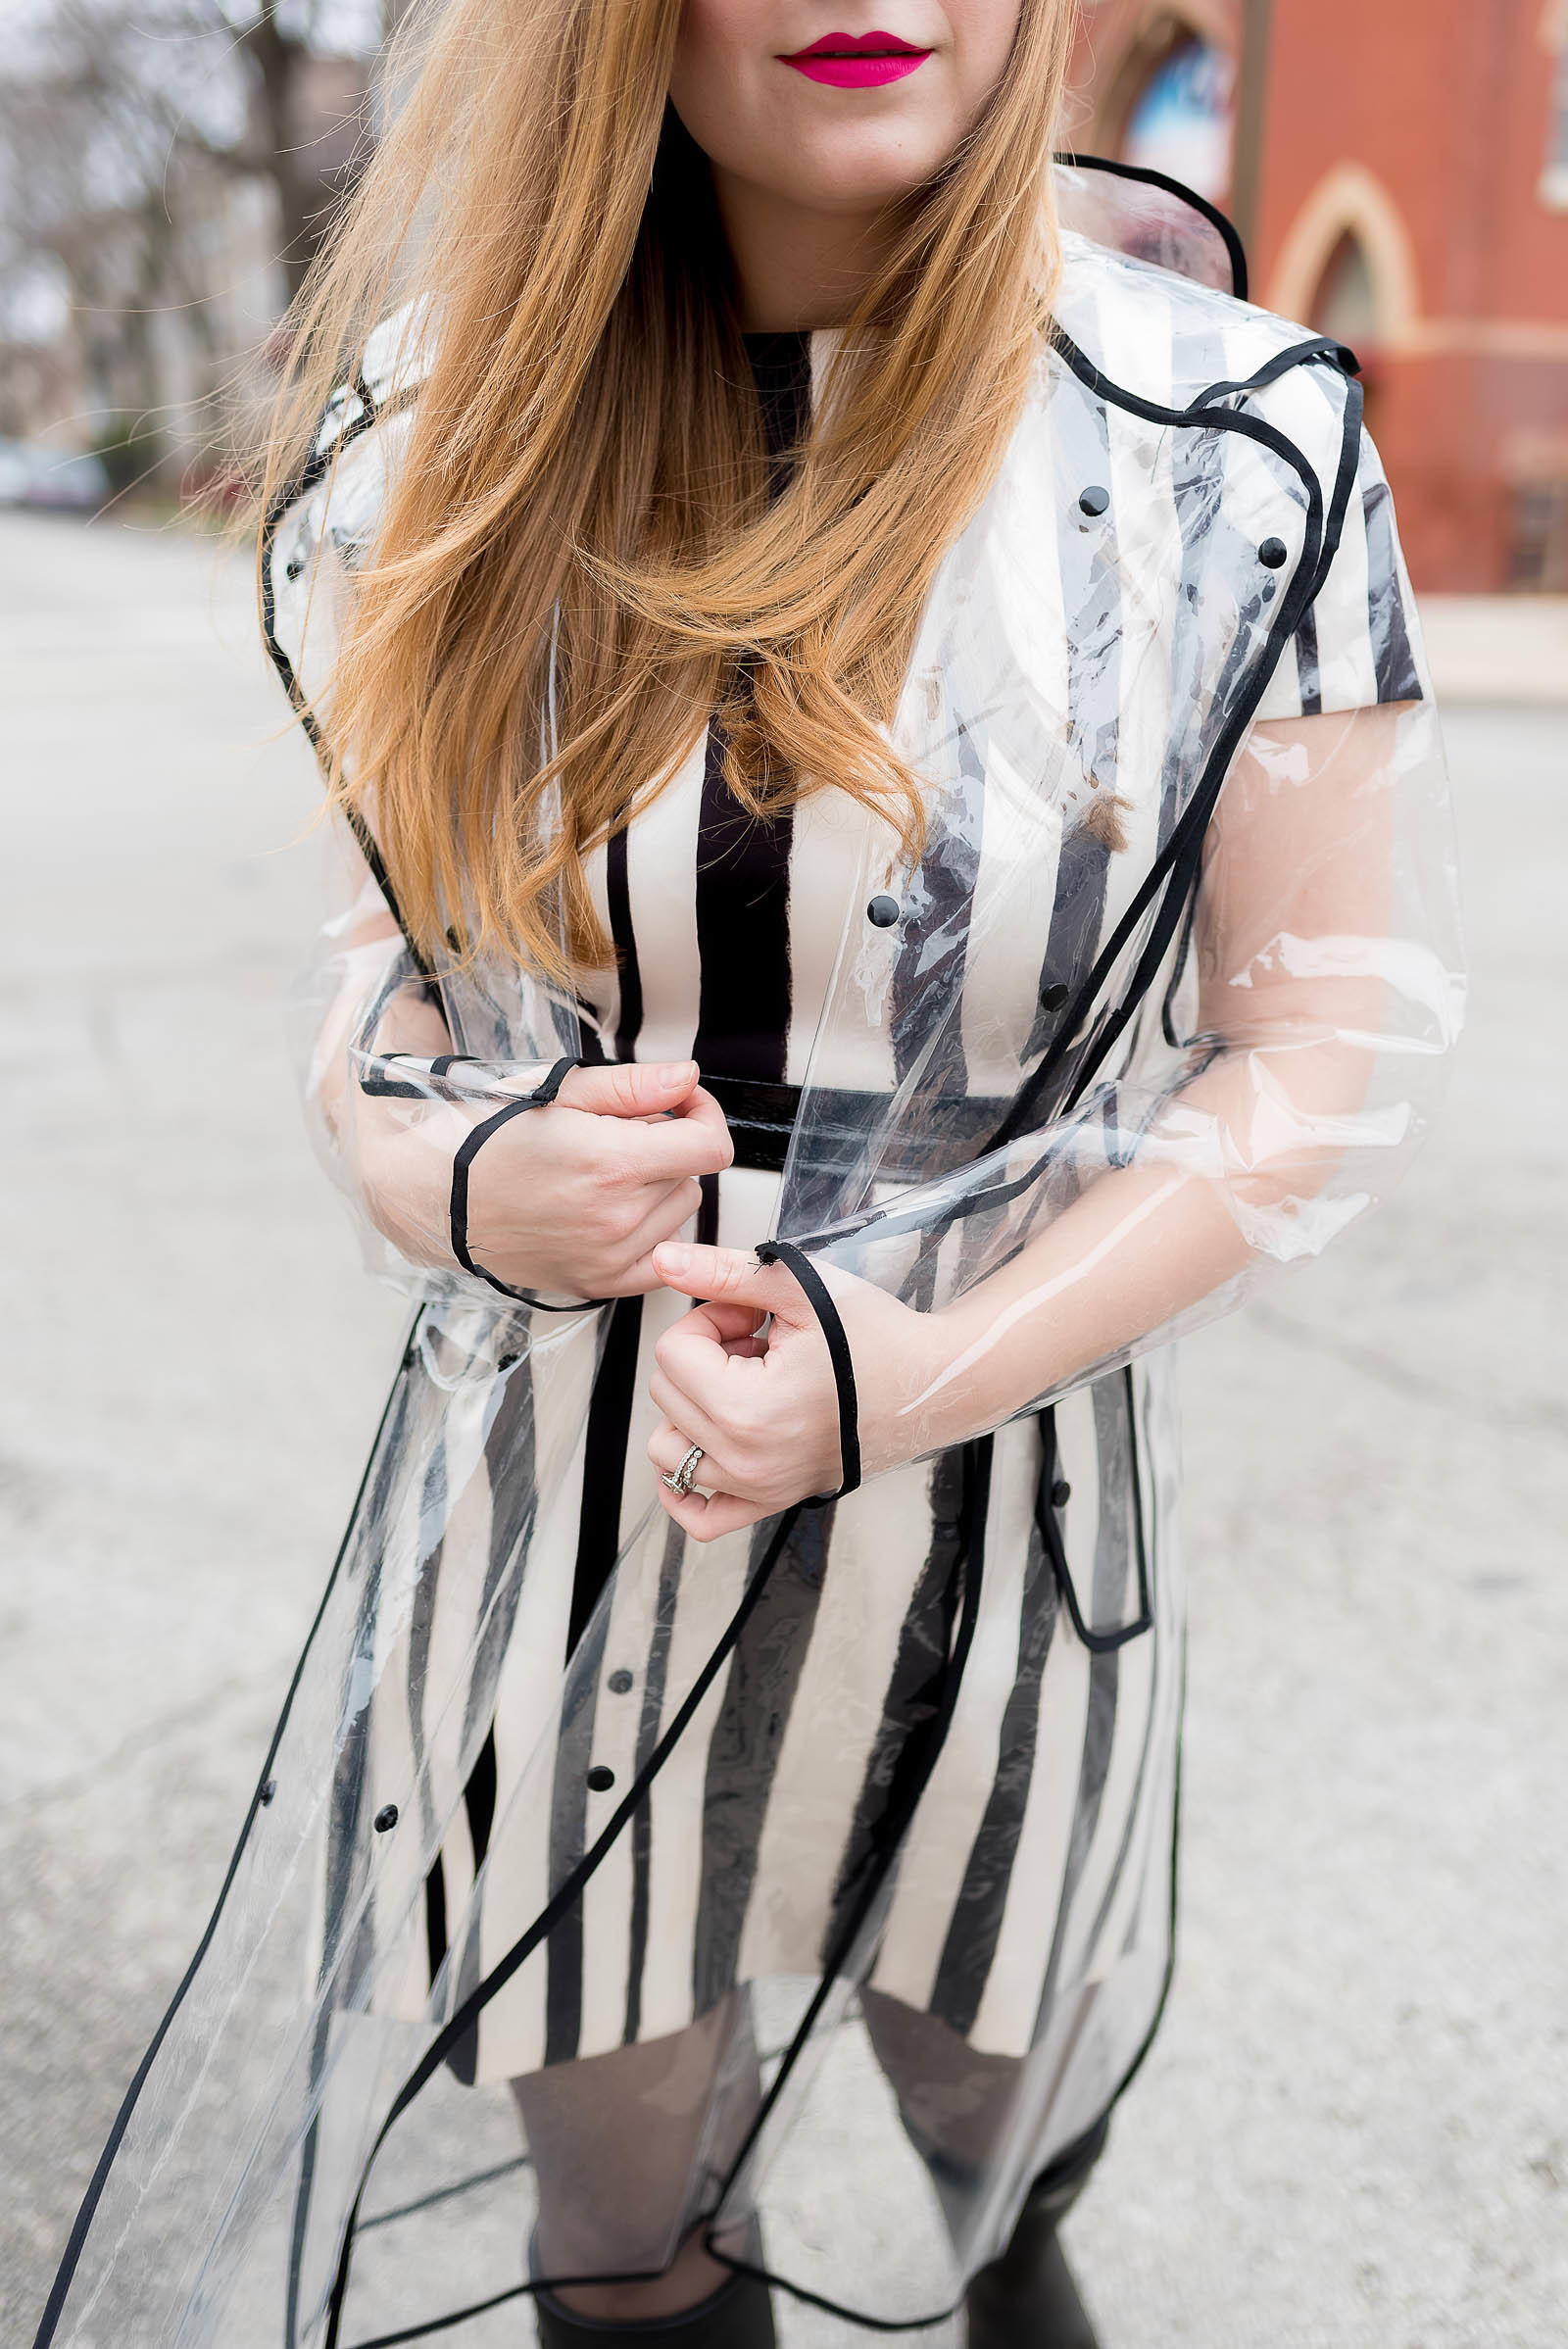 Striped Rainy Day Outfit Inspiration with Wellies